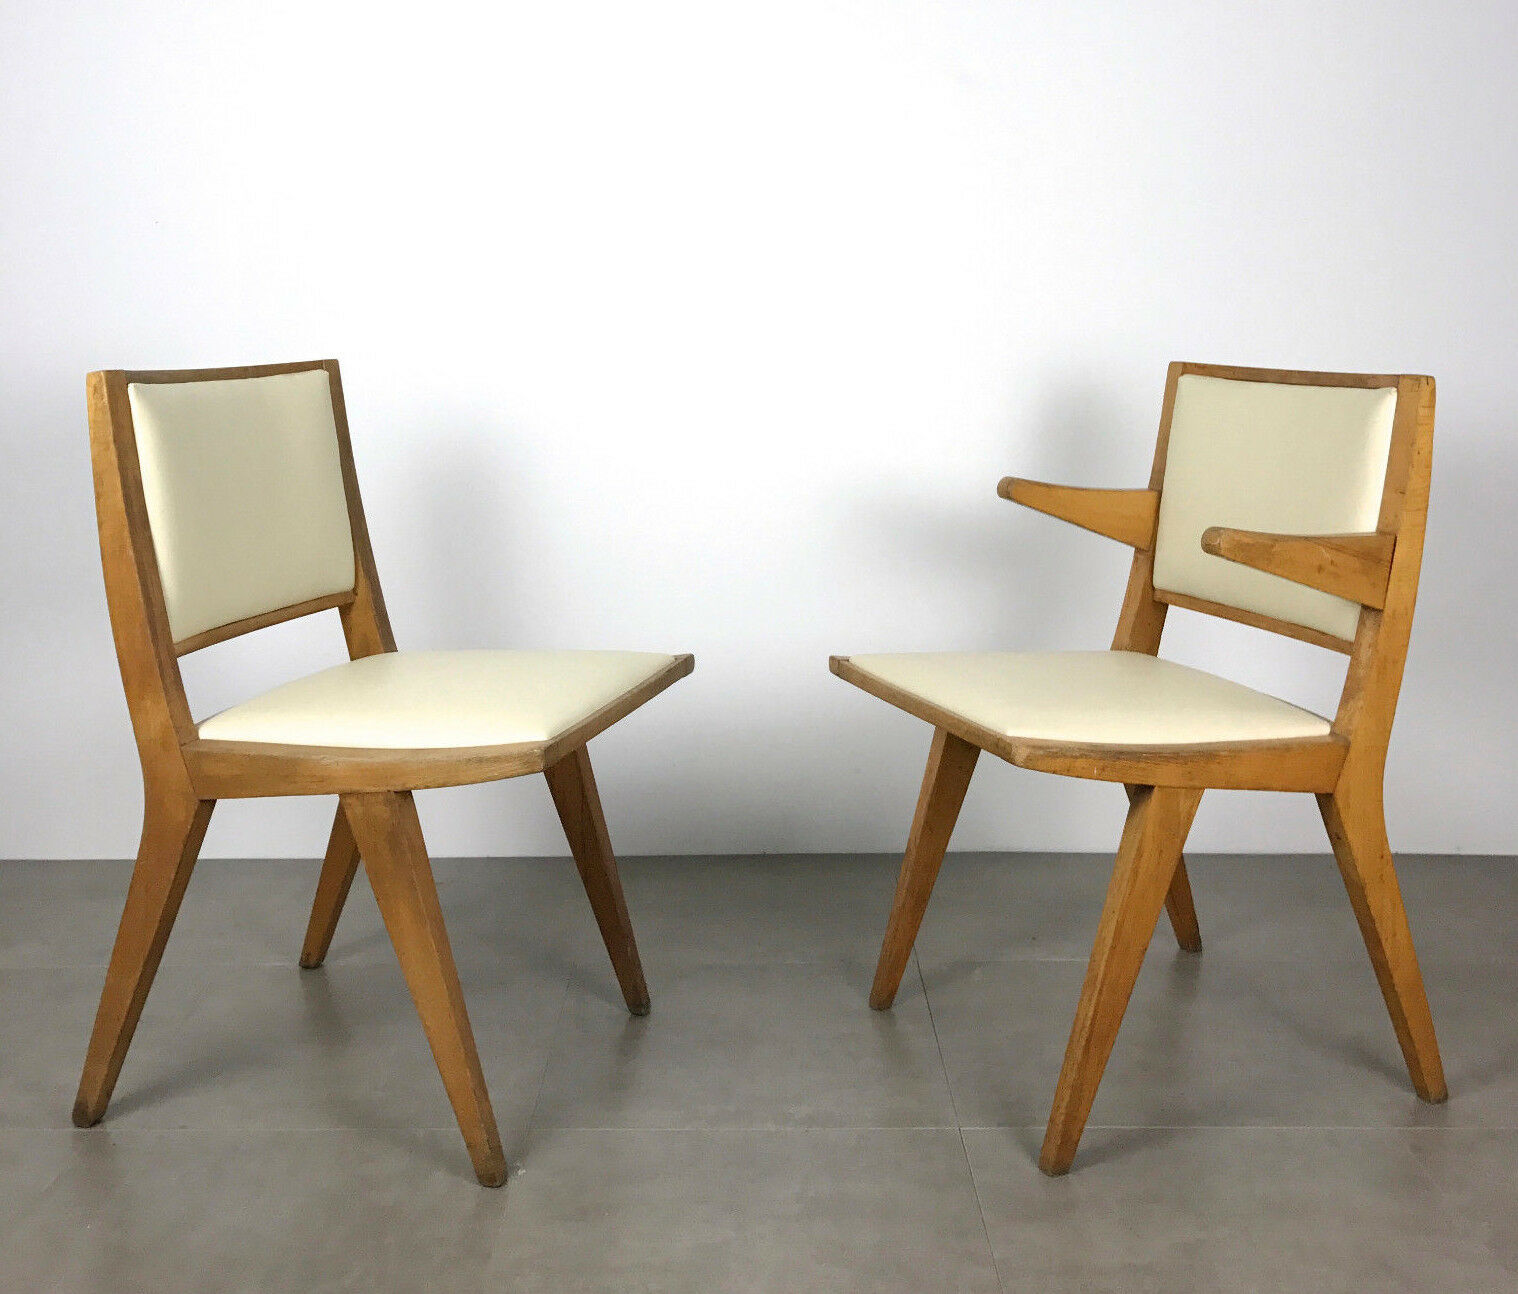 Pair Vintage Mid Century Modern Wood Chairs By Daystrom 1950 S Jens Risom Style 1 Of 12only Available